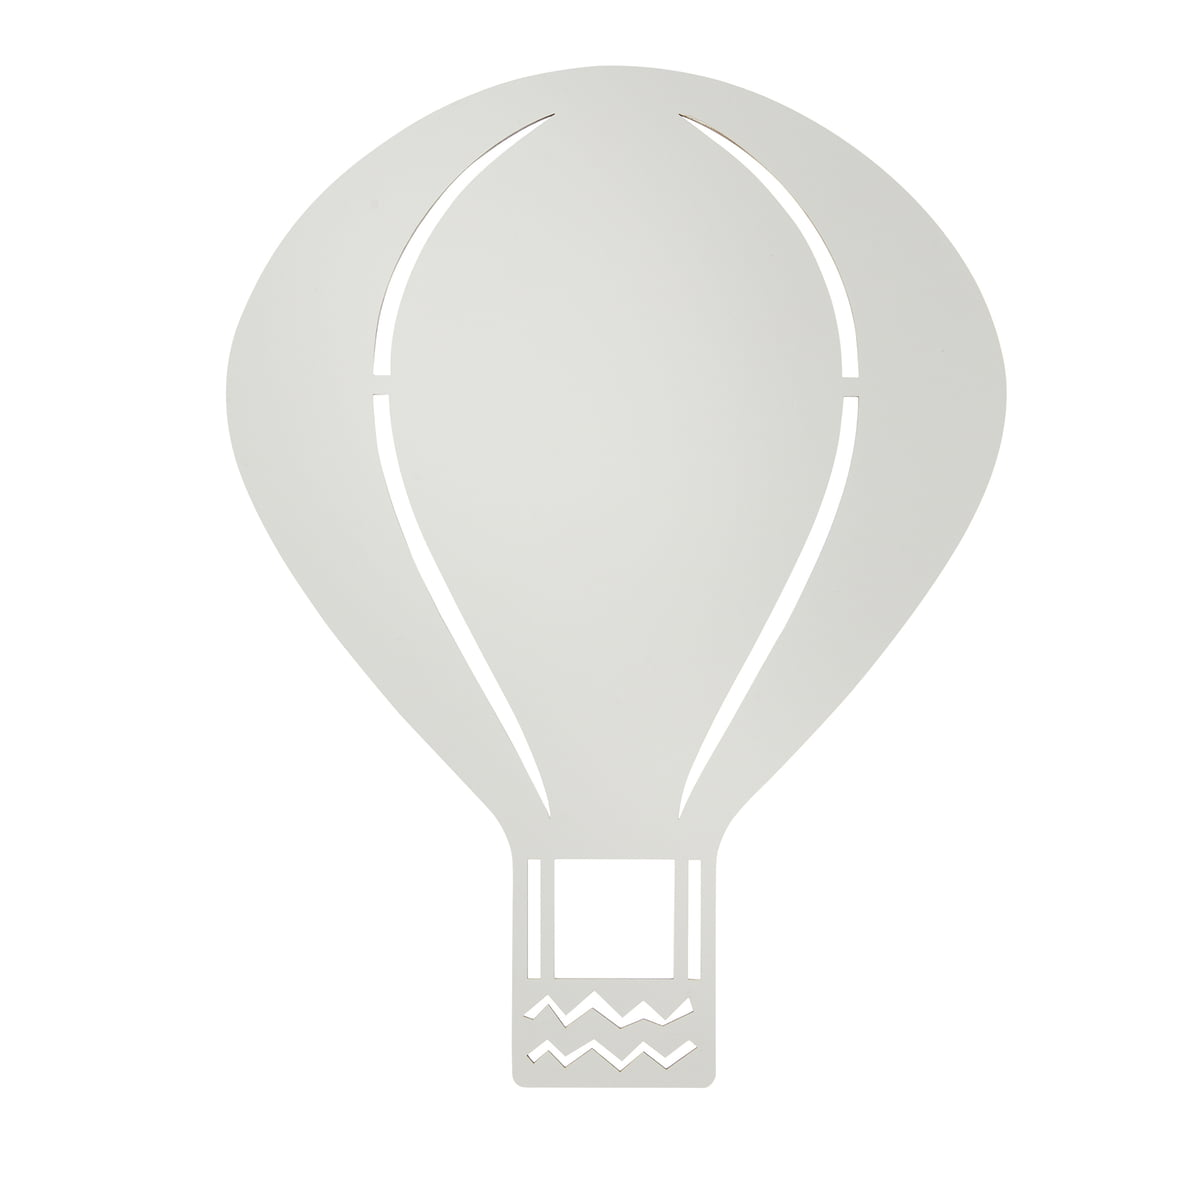 Hot Air Balloon Lamp By Ferm Living In Grey